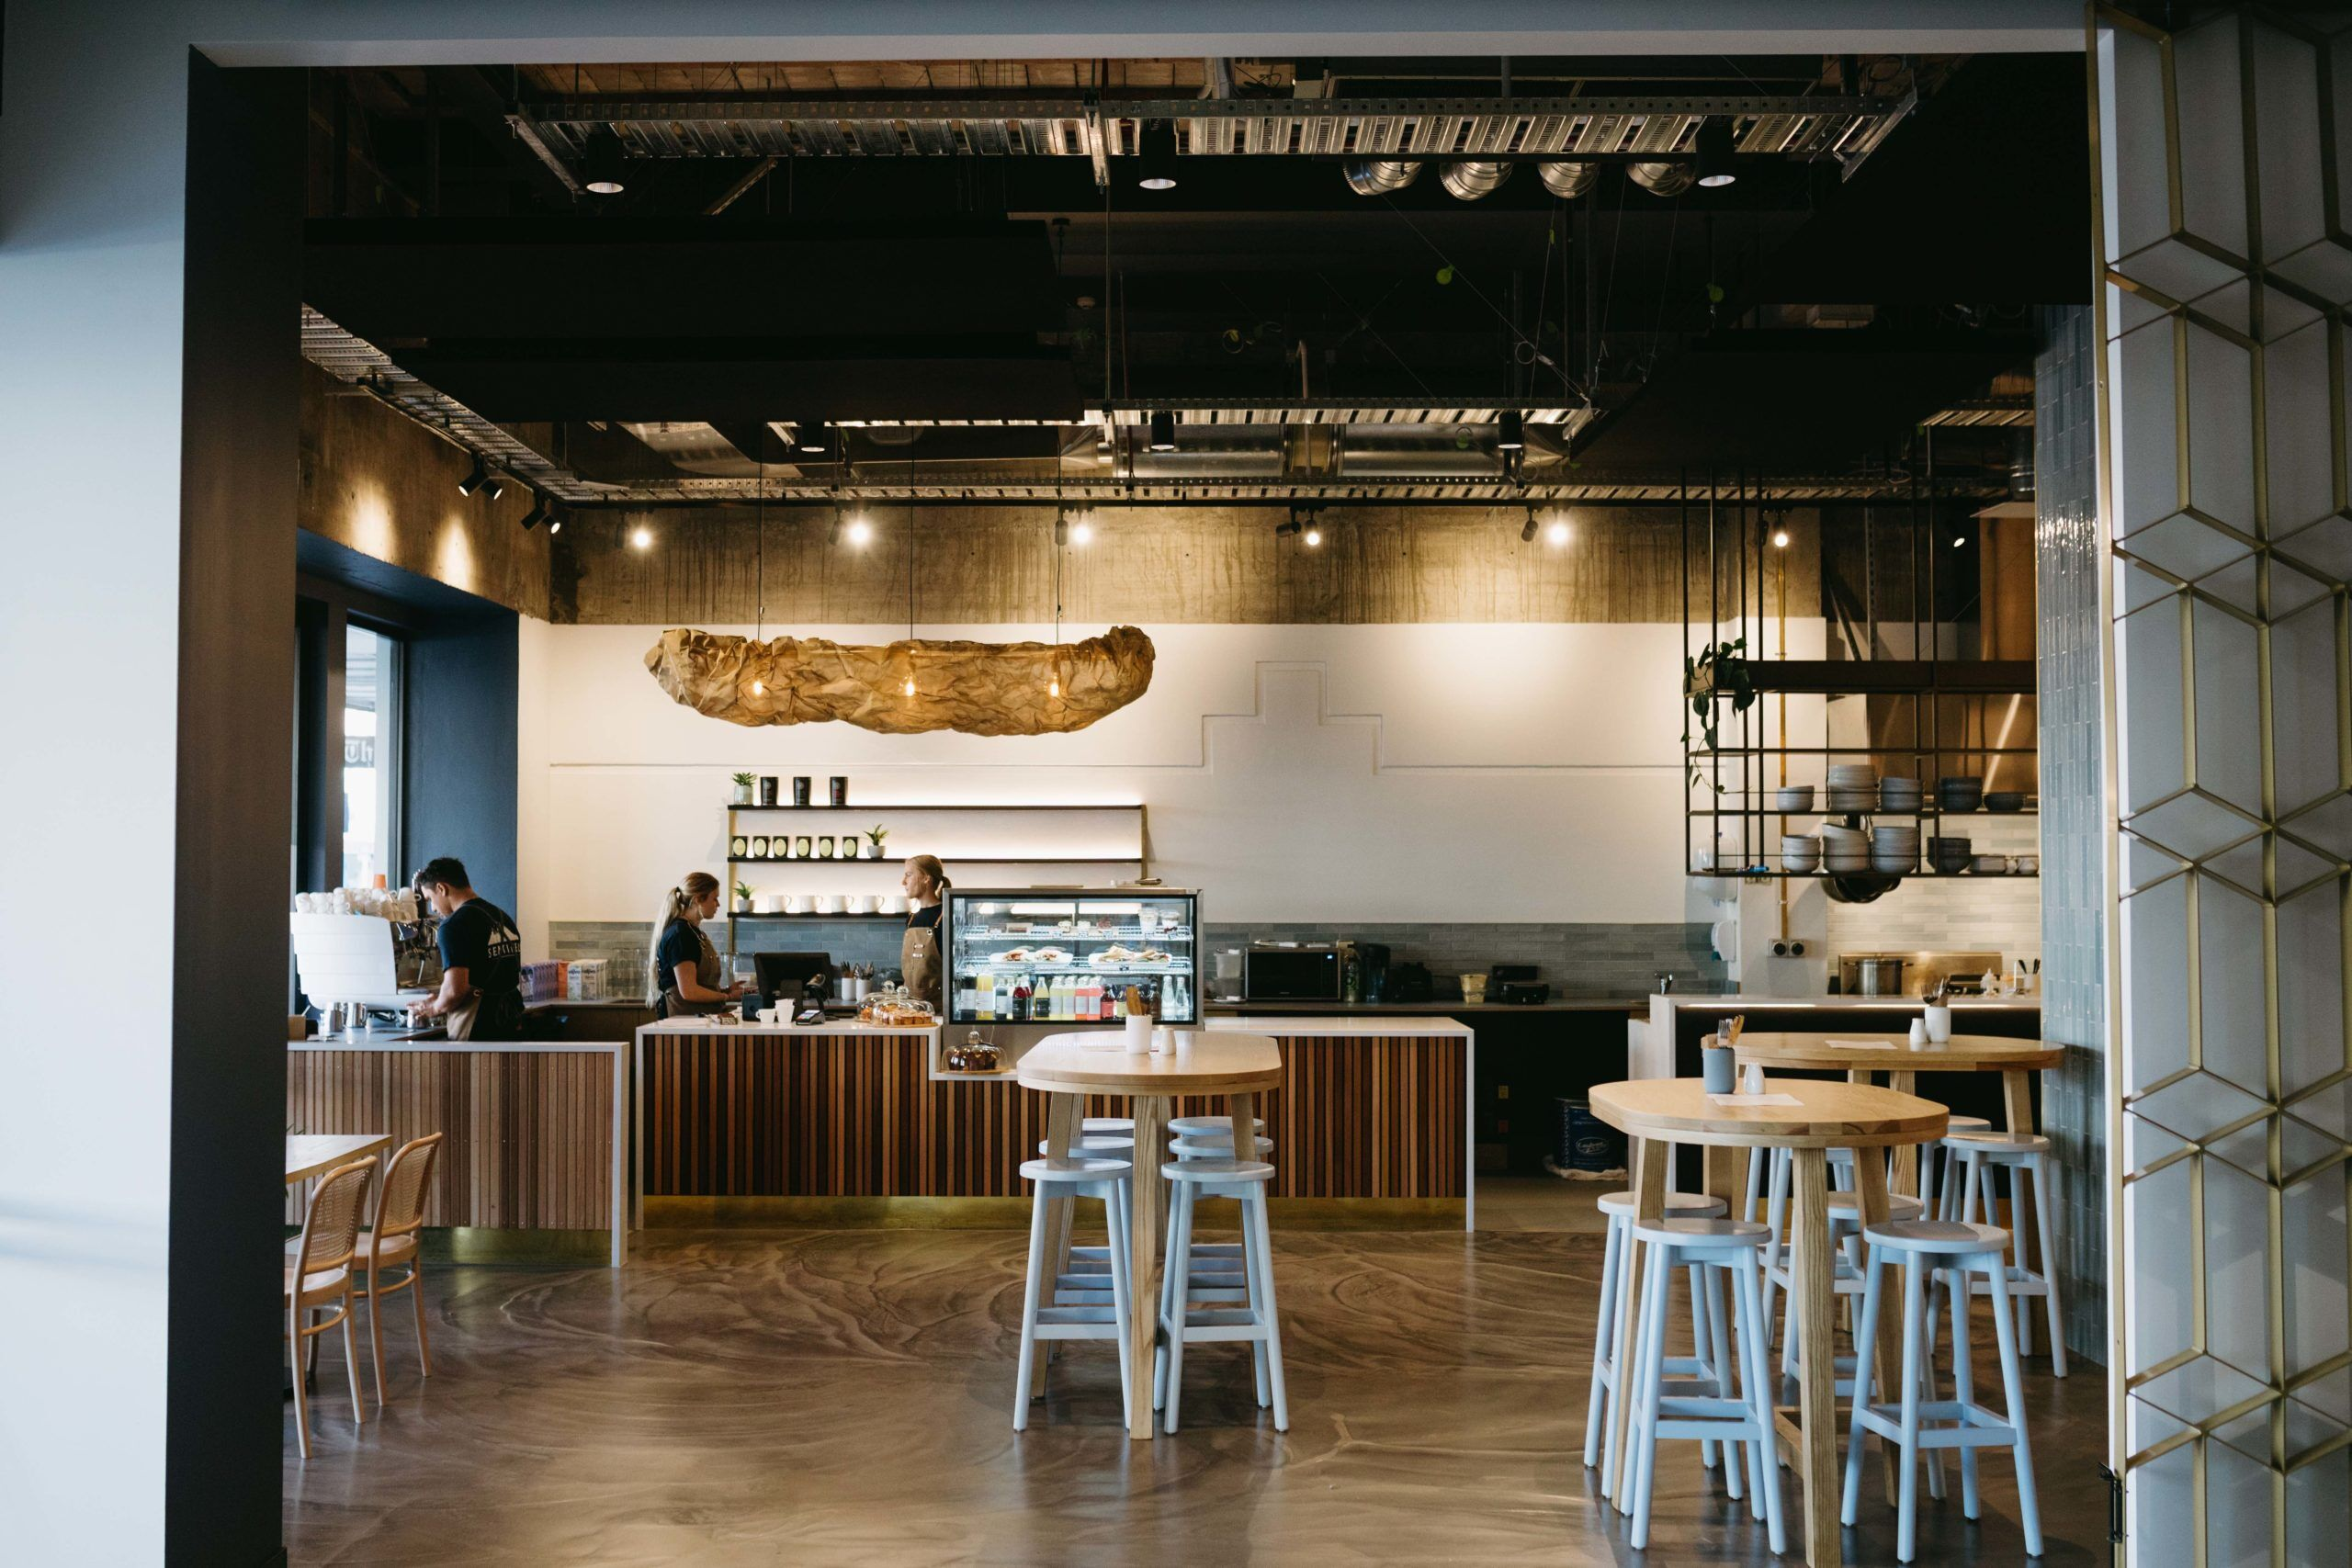 Sentinel Cafe with a bright yet moody hospitality interior fitout